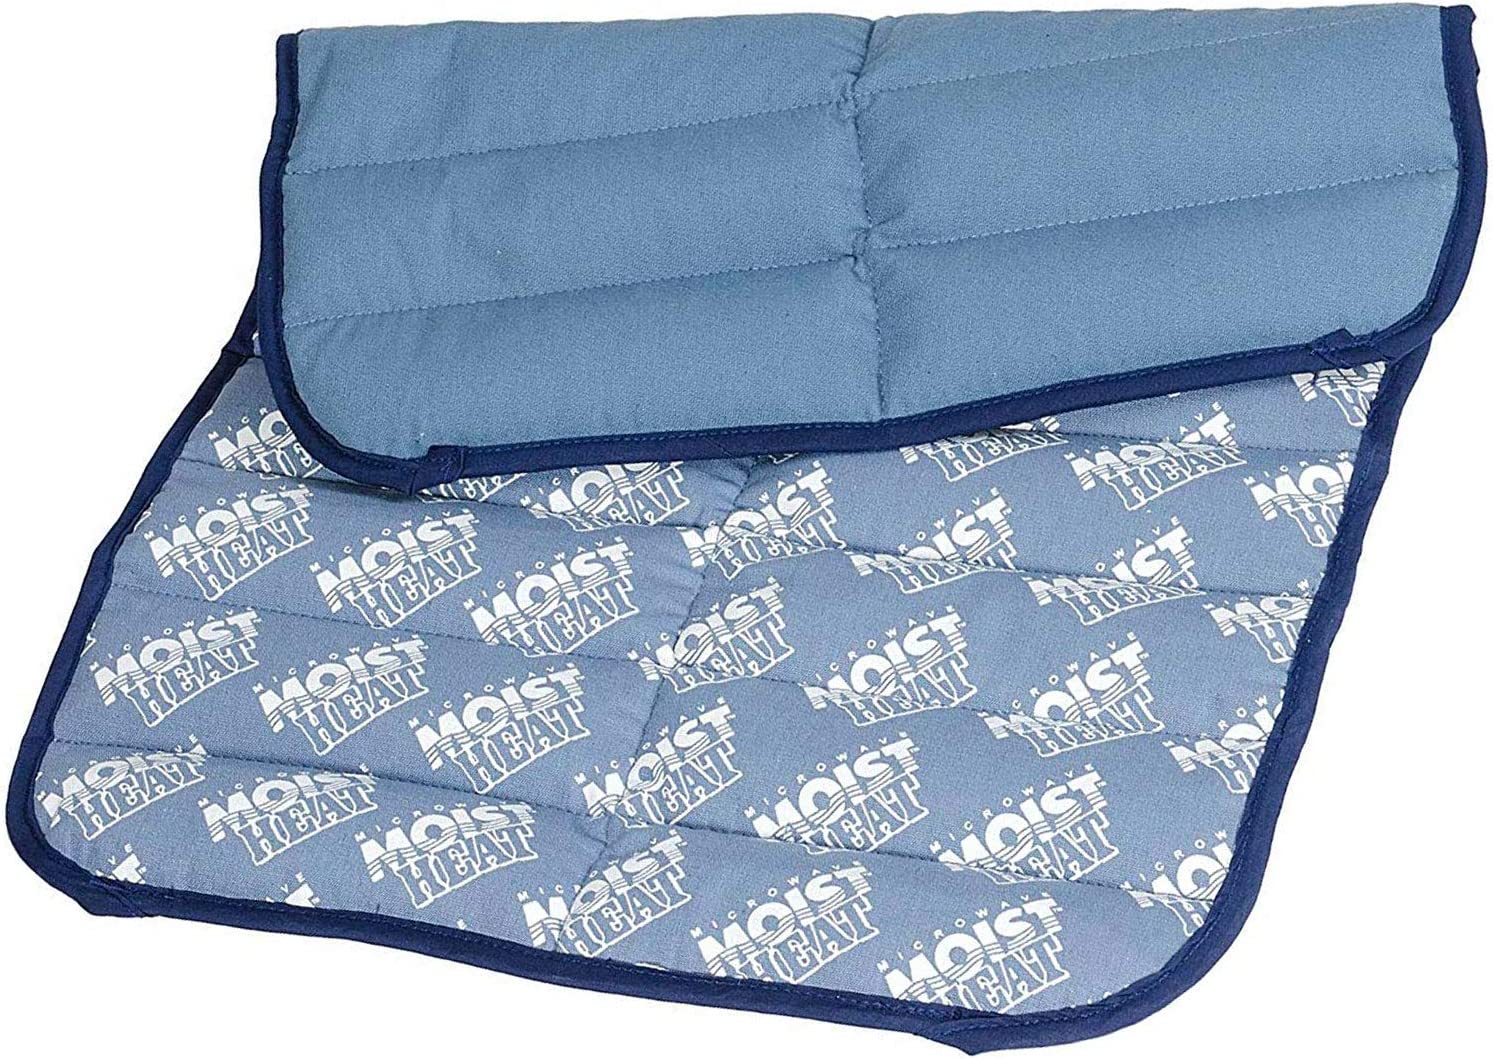 HealthSmart TheraBeads Microwavable Heating Pad Pro Pack, 15 x 22, 5 Count